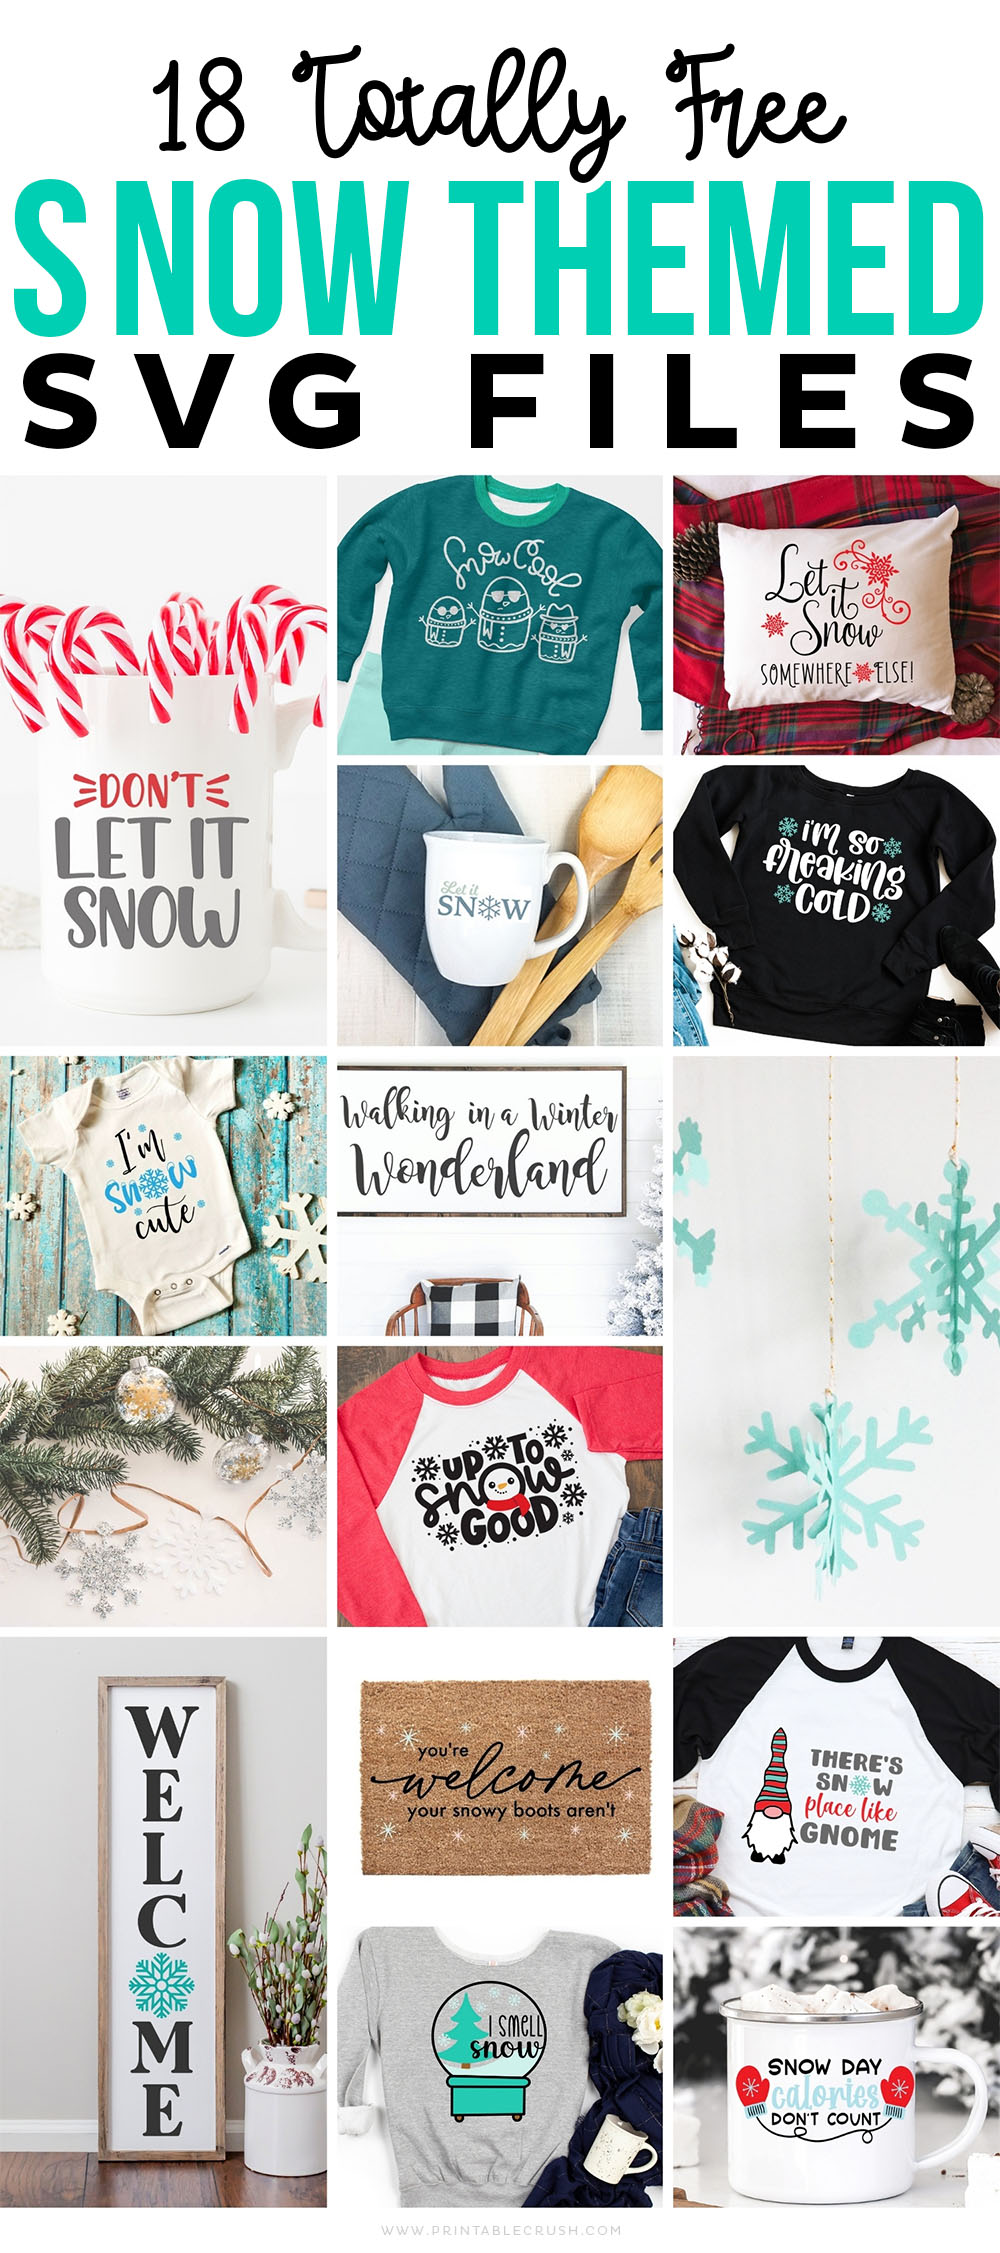 15 Free Snow SVG Files - Snowman SVG Files - Free Cut Files - Free Winter Cut Files - Printable Crush